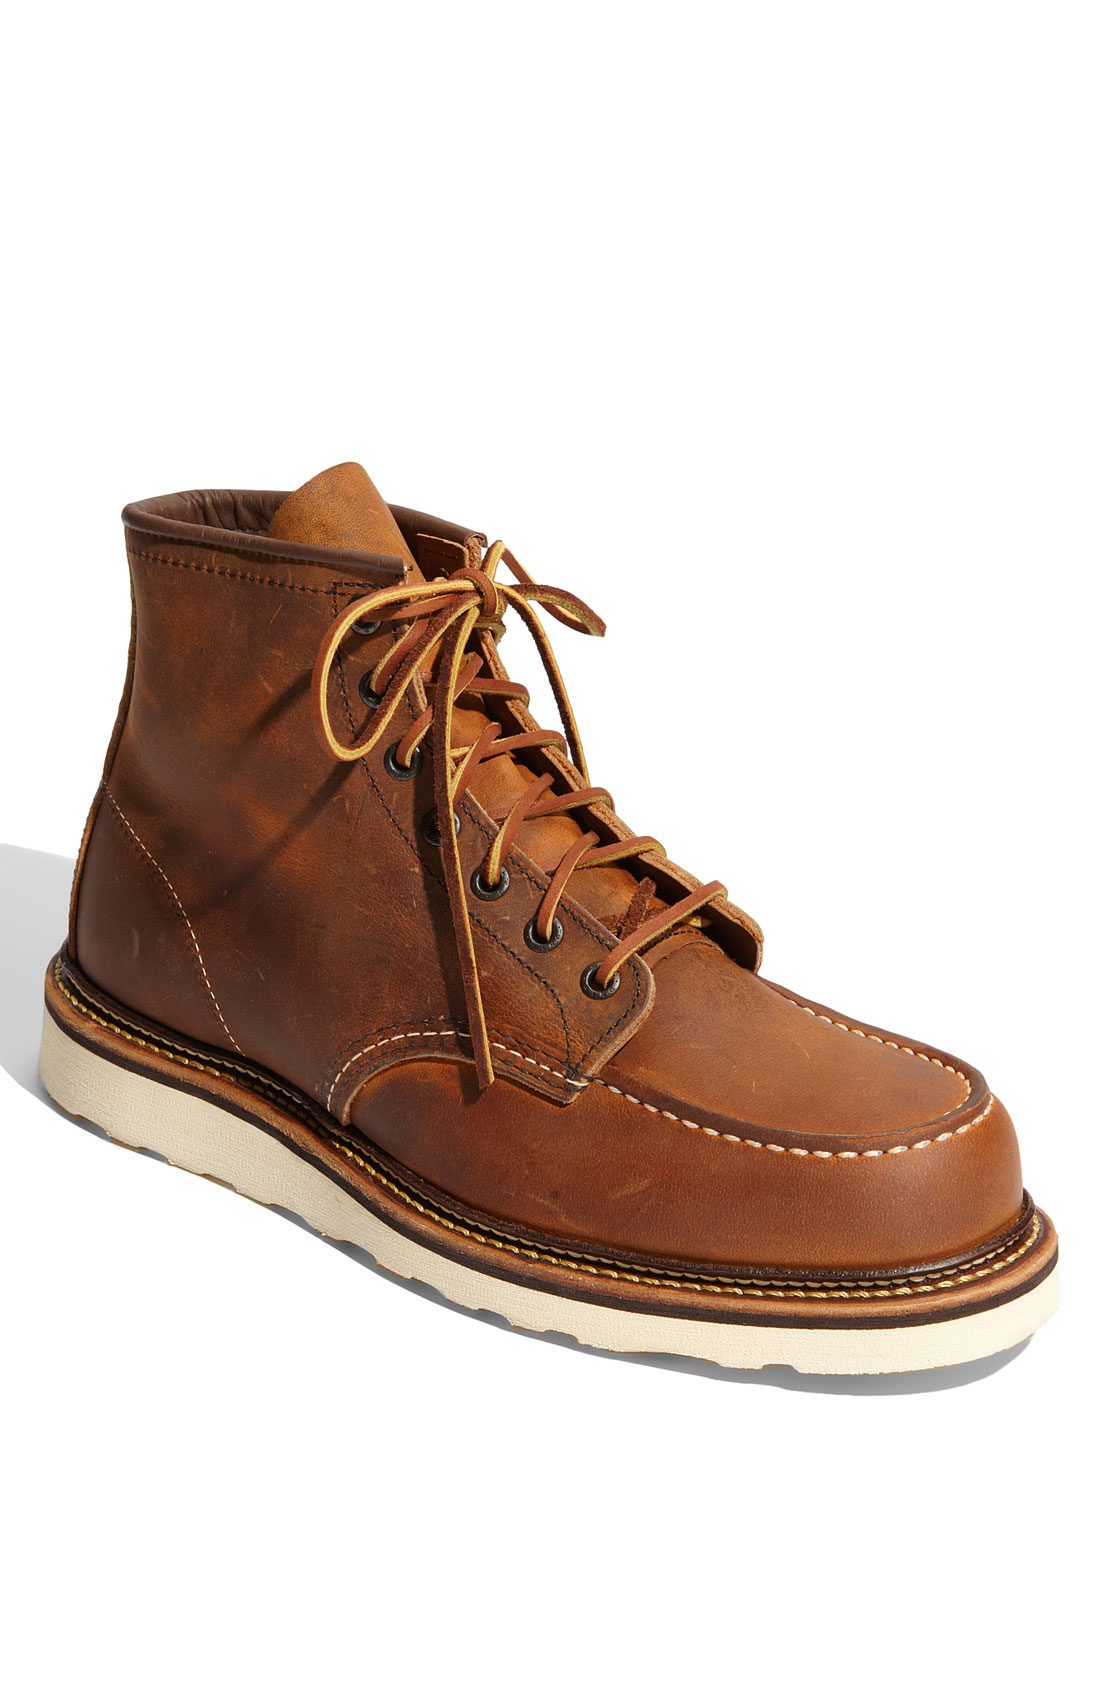 Womens Red Wing Boots NCHDWjAp